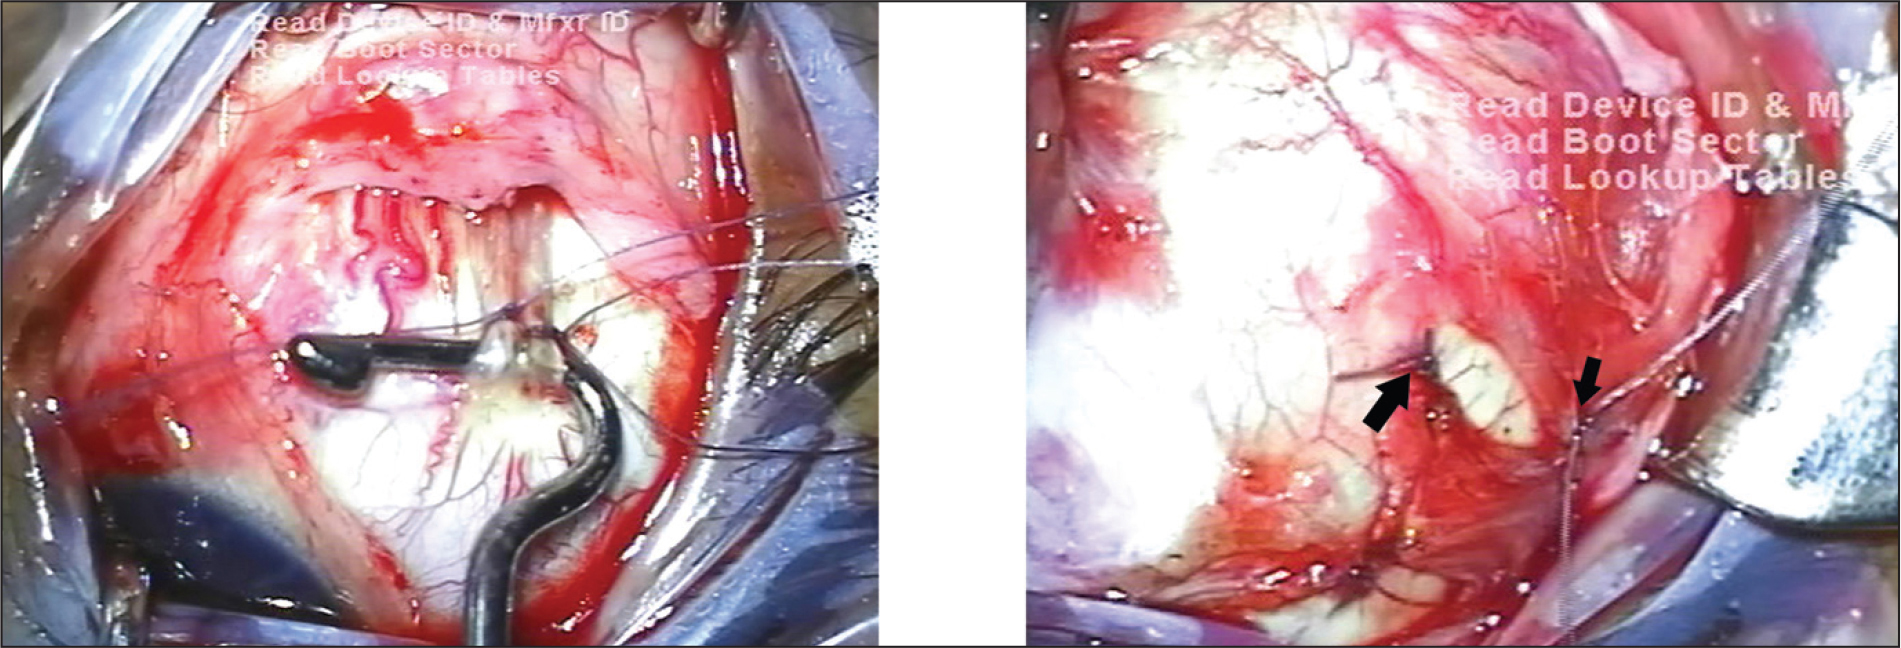 Intraoperative images showing transposition of the temporal half of the superior rectus muscle to the lateral rectus muscle with muscle union suture and ciliary muscle sparing in the nasal half of the inferior rectus muscle.